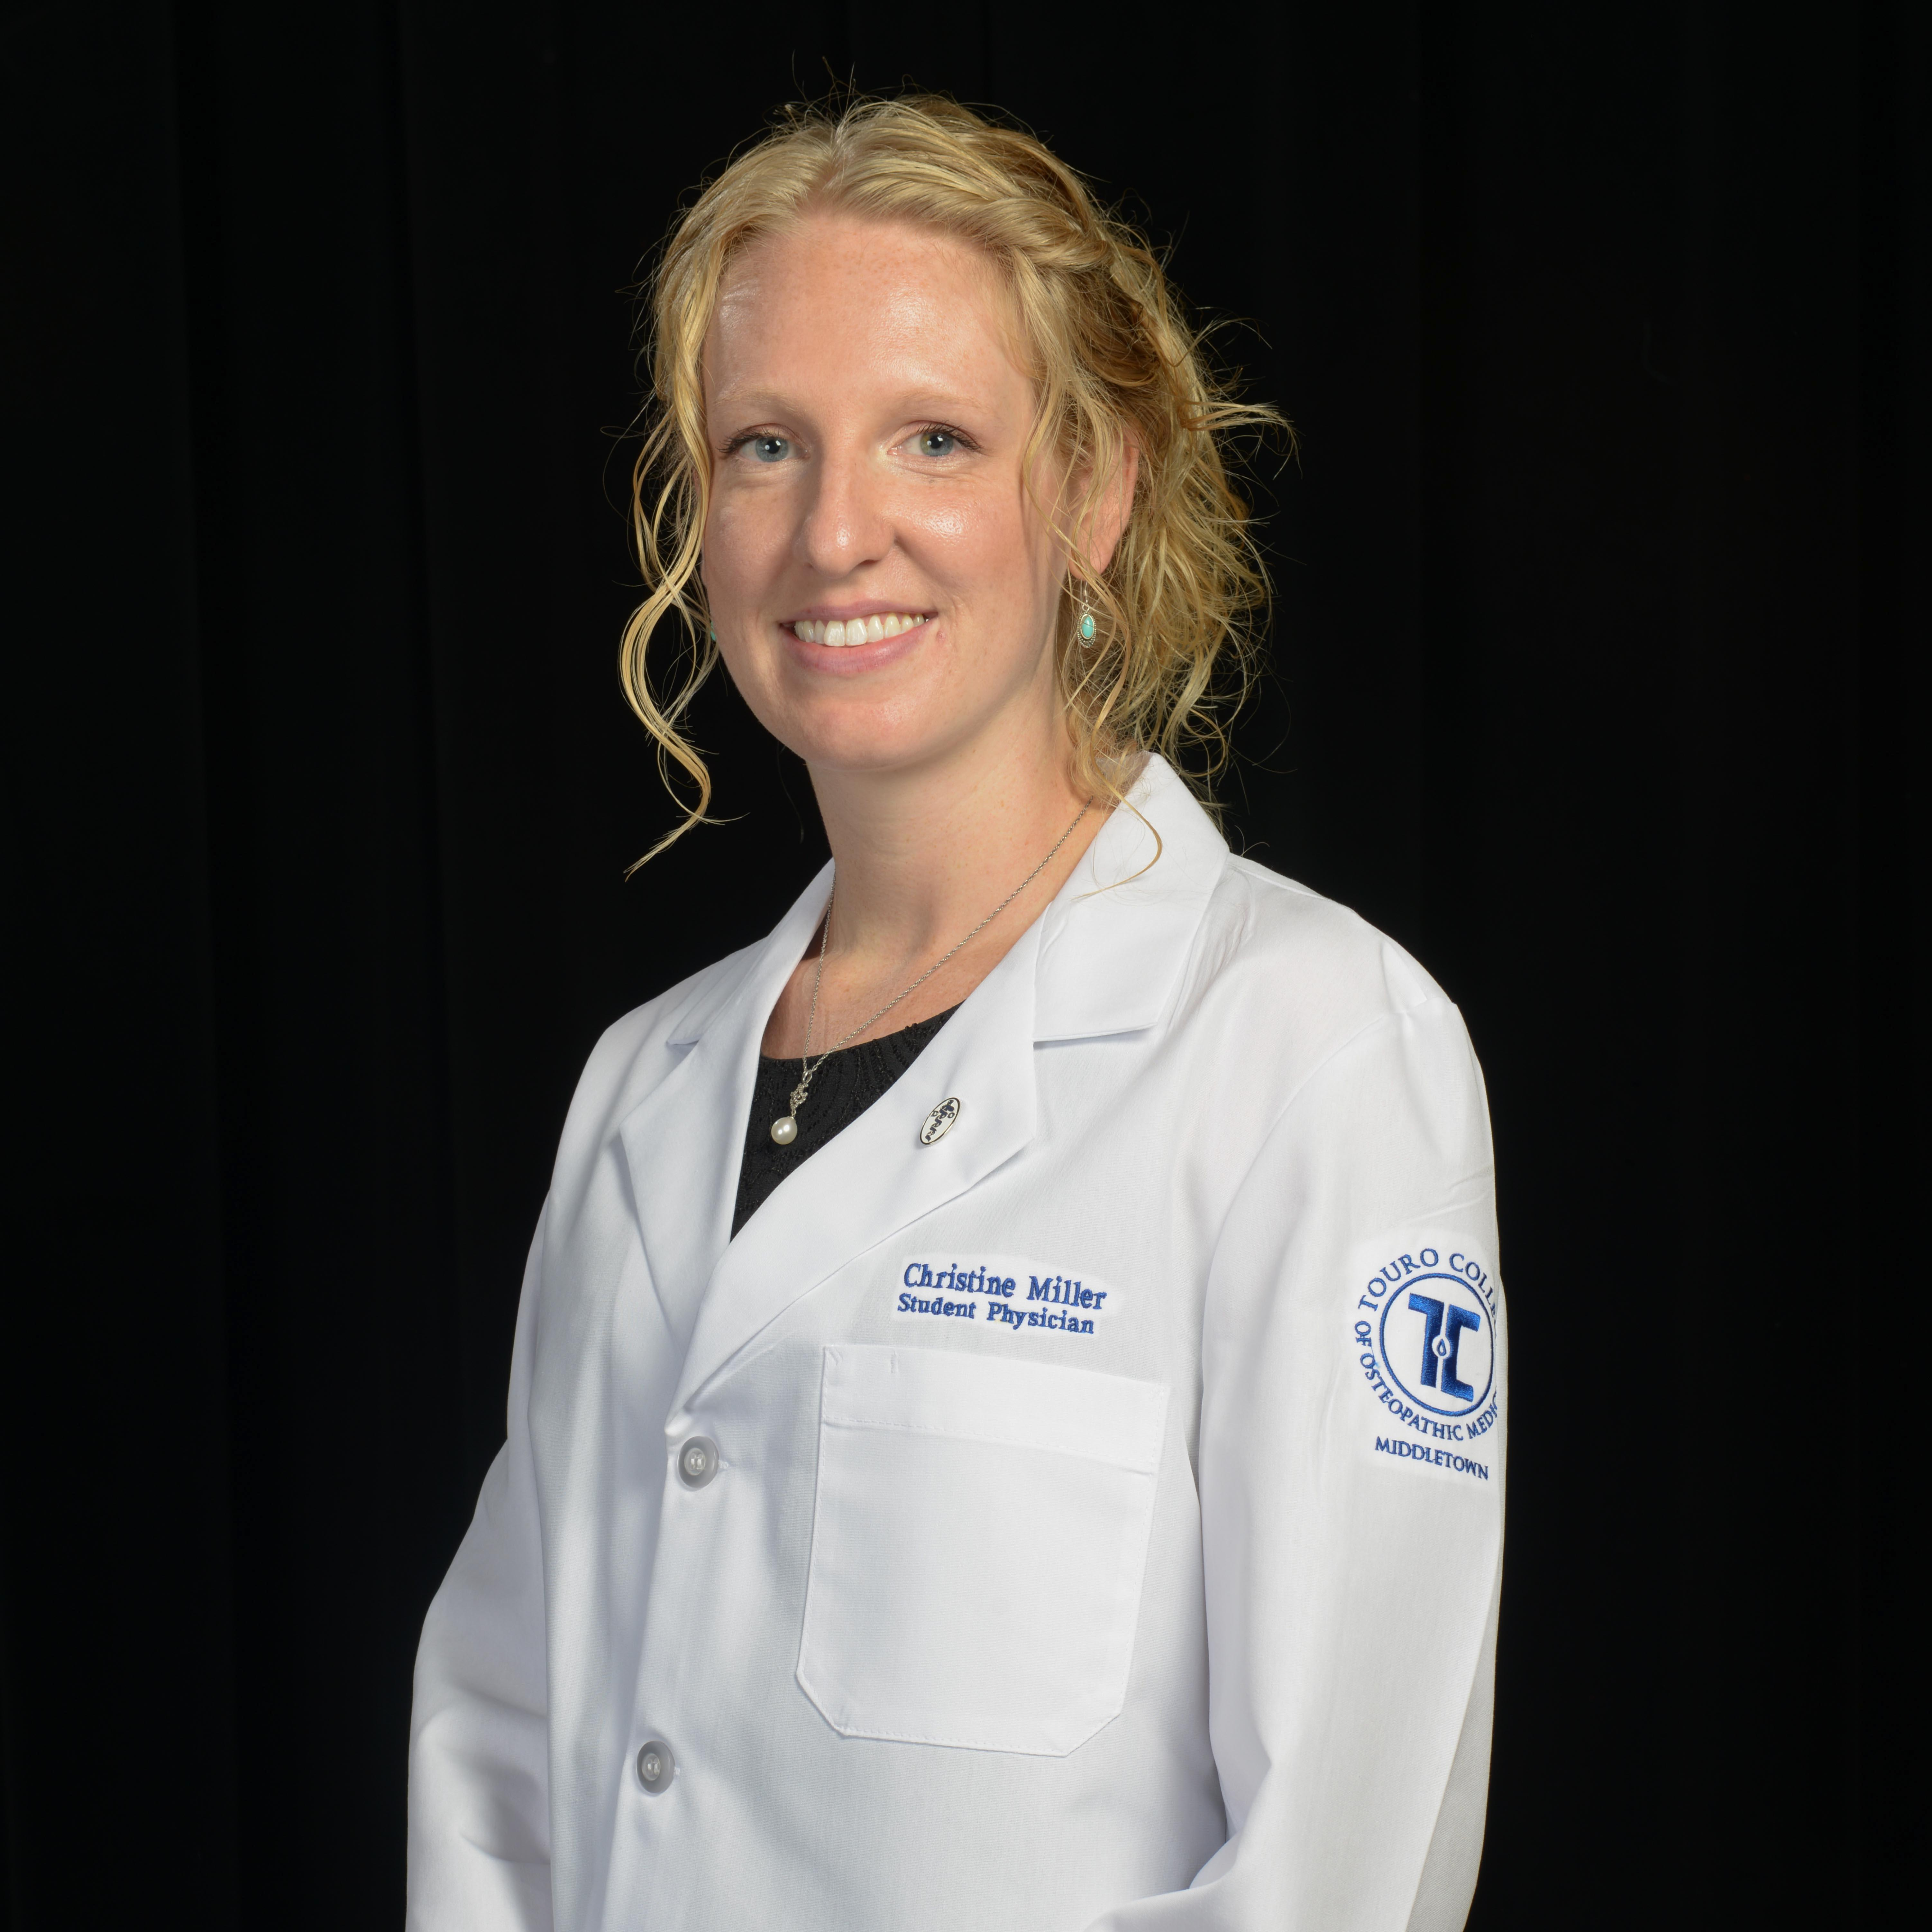 Christine Miller is the 2015 Student D.O. of the Year at Touro College of Osteopathic Medicine (TouroCOM)-Middletown.